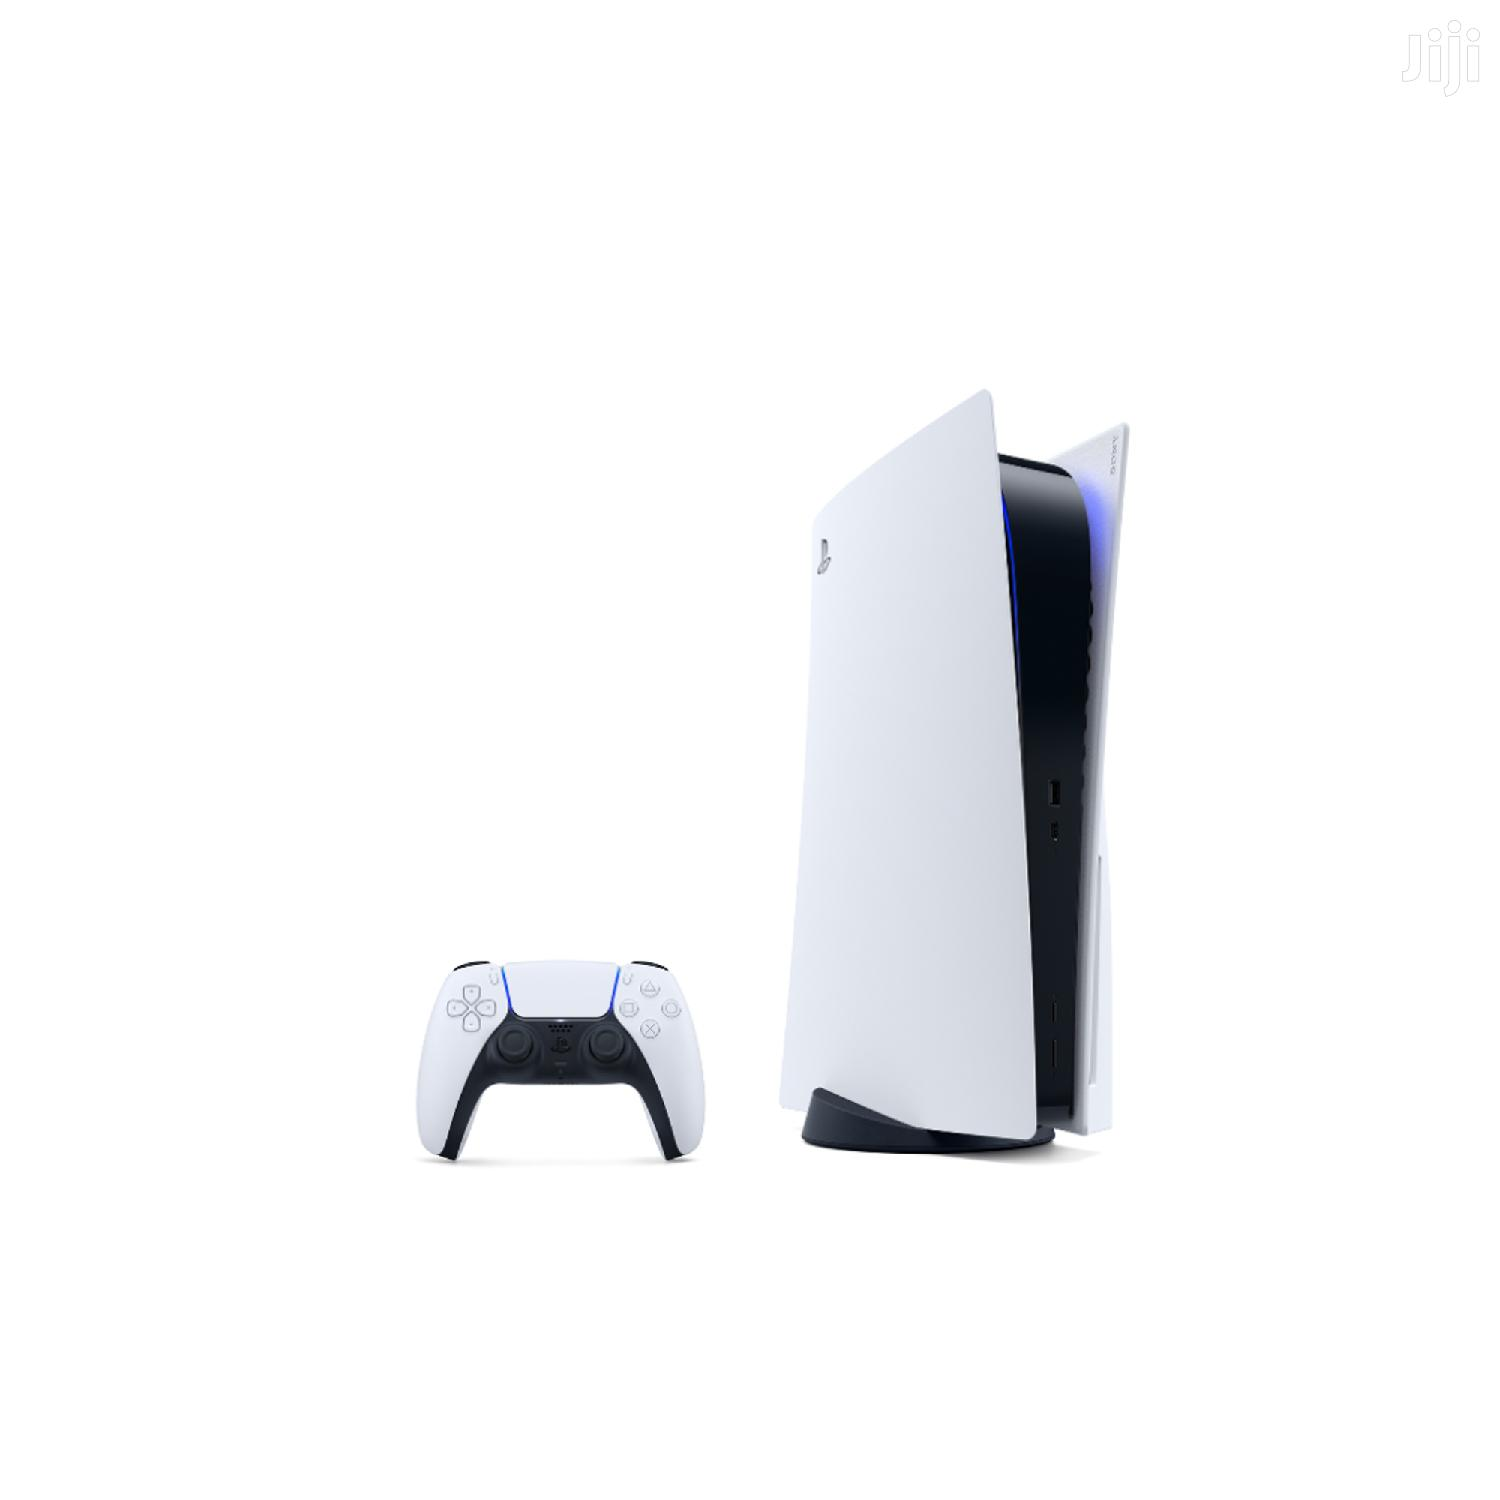 Sony - Playstation 5 Console | Video Game Consoles for sale in North Labone, Greater Accra, Ghana